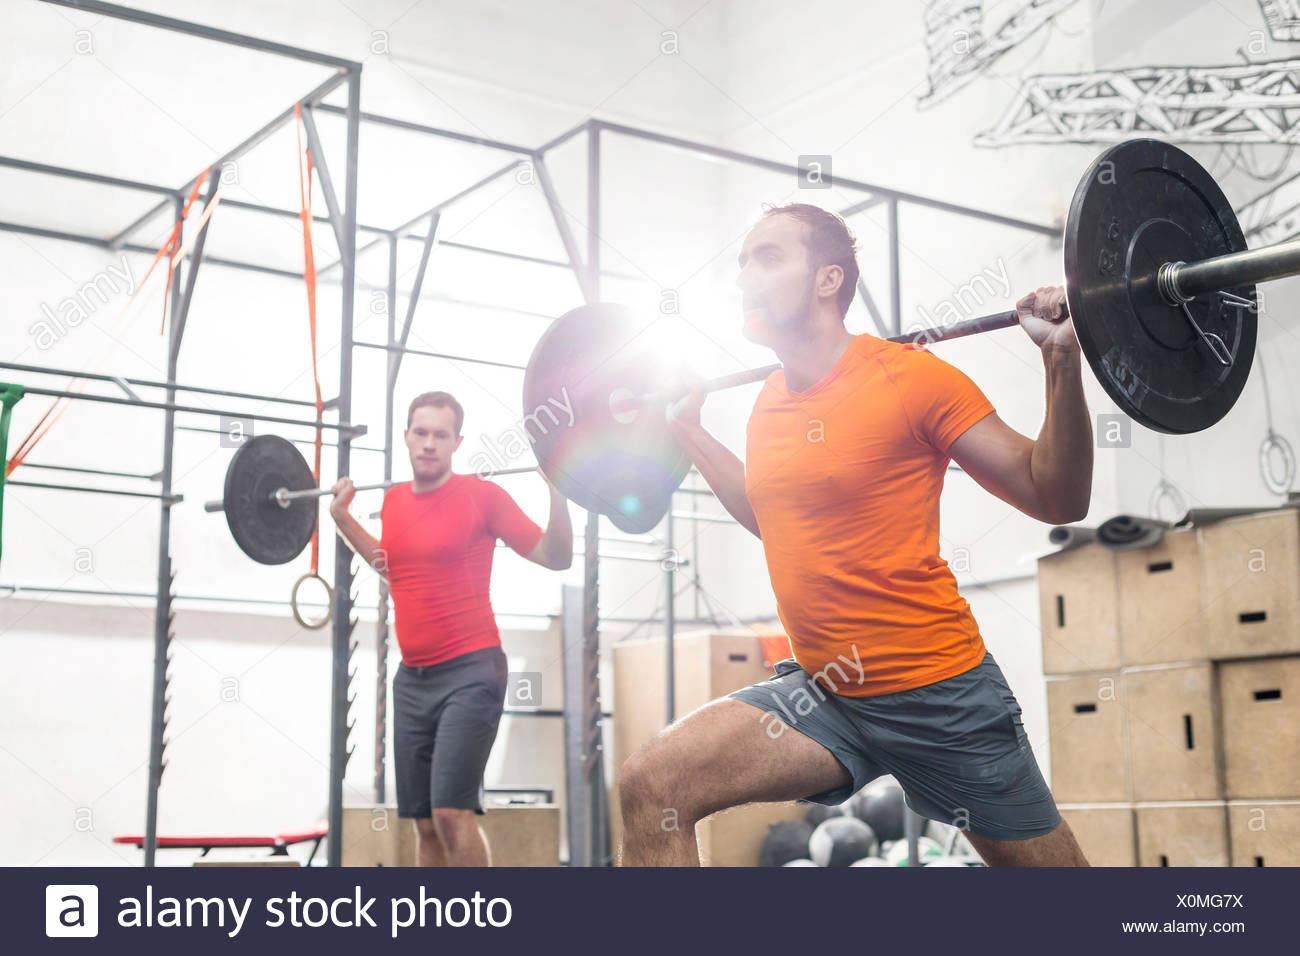 Men lifting barbells in crossfit gym - Stock Image